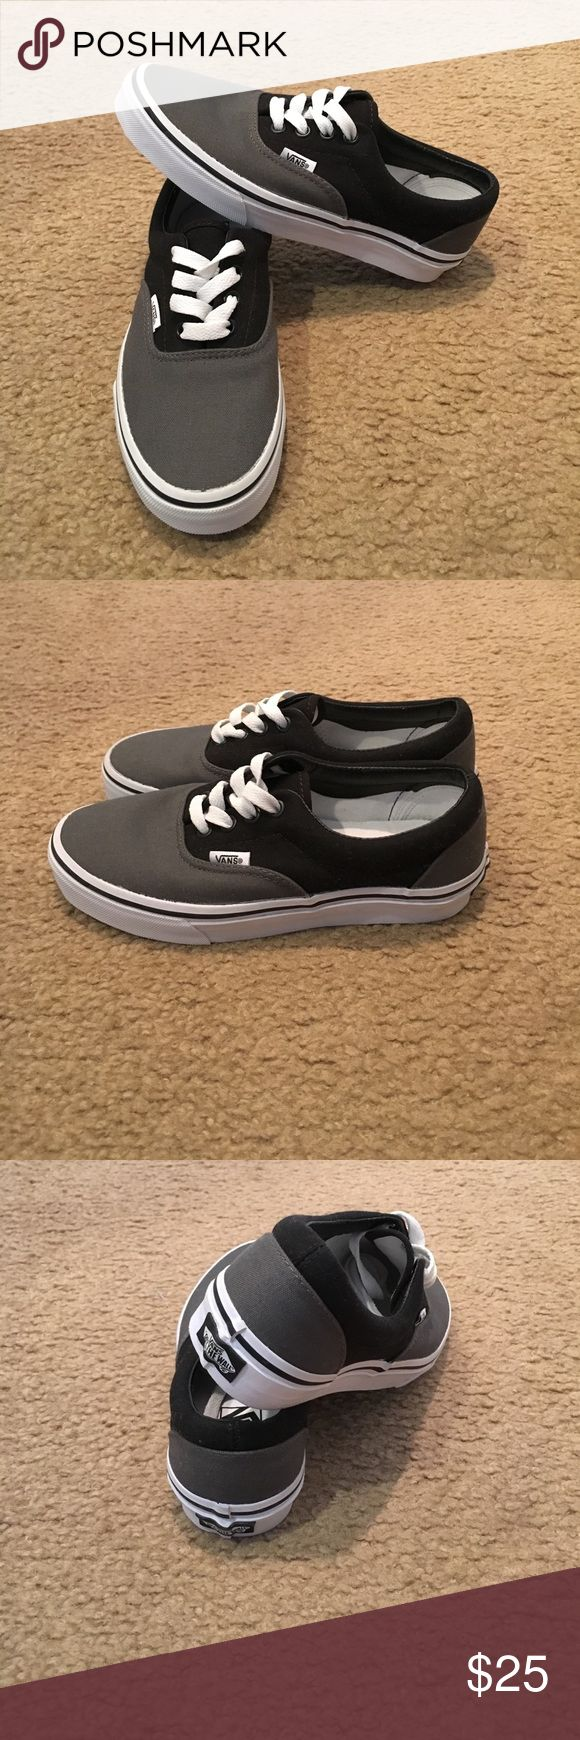 Authentic grey/black Vans New with out box. Men's 4 women's 5.5 Vans Shoes Sneakers